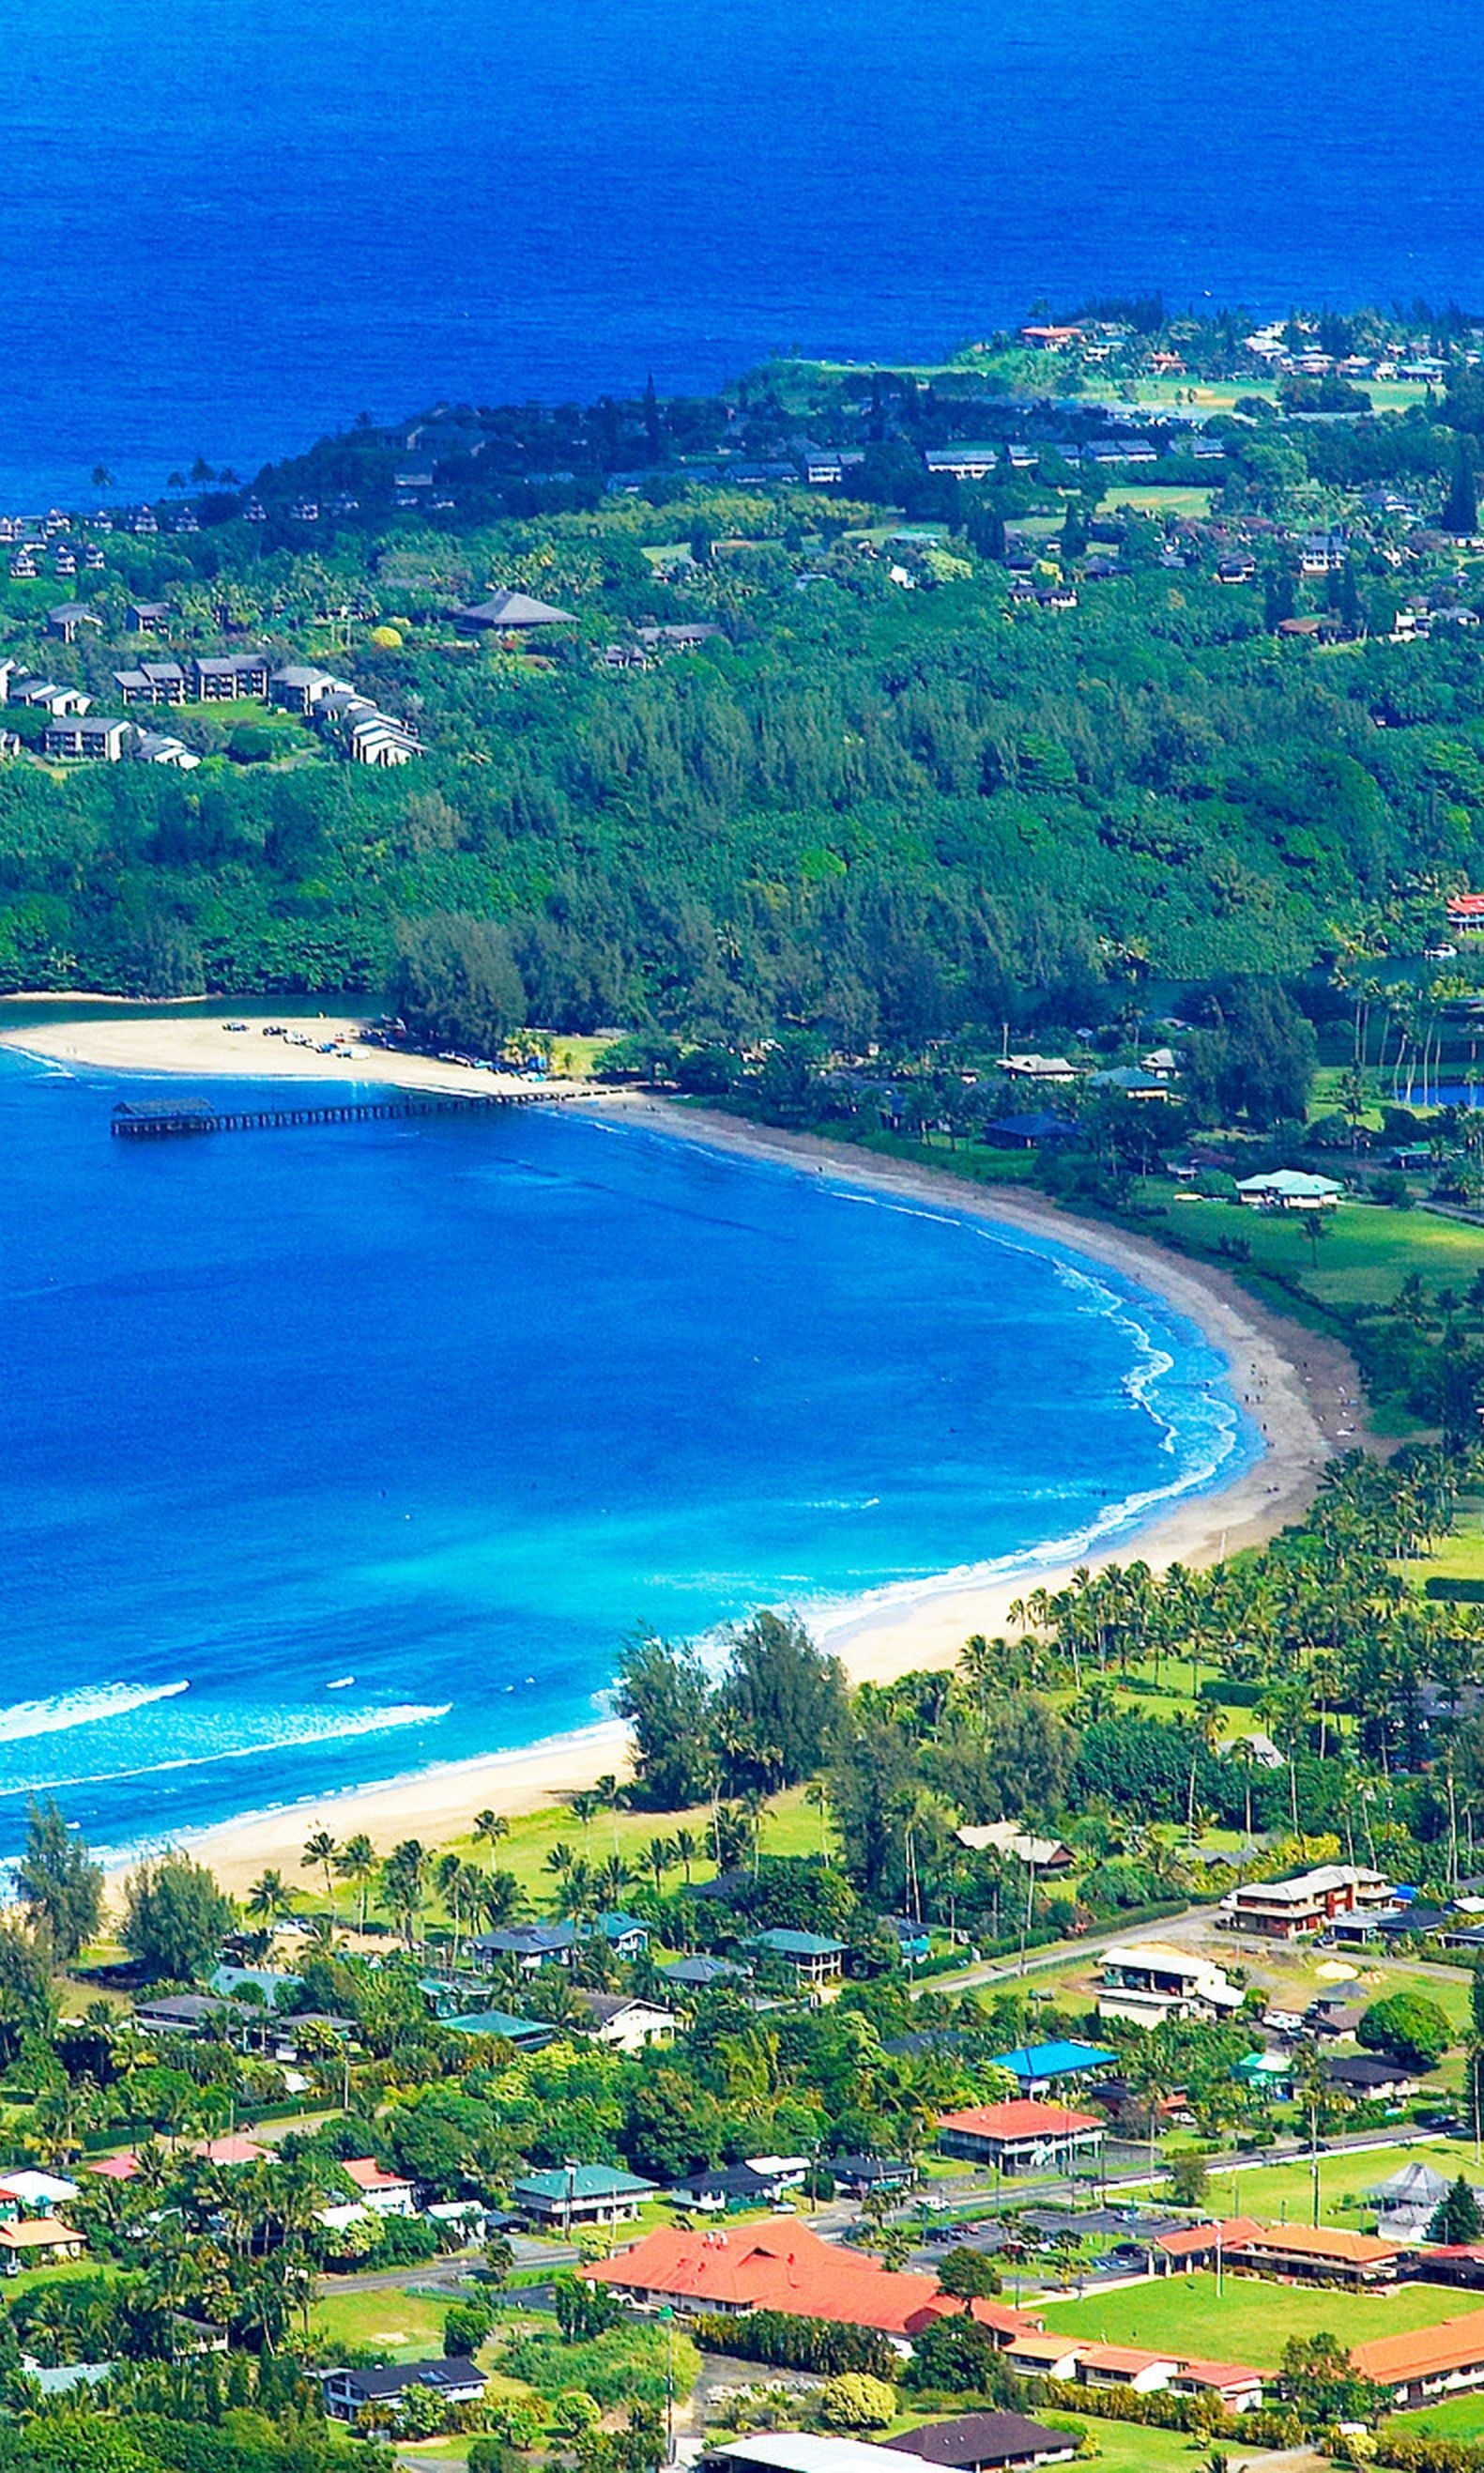 Top 10 Beach Destinations In The World